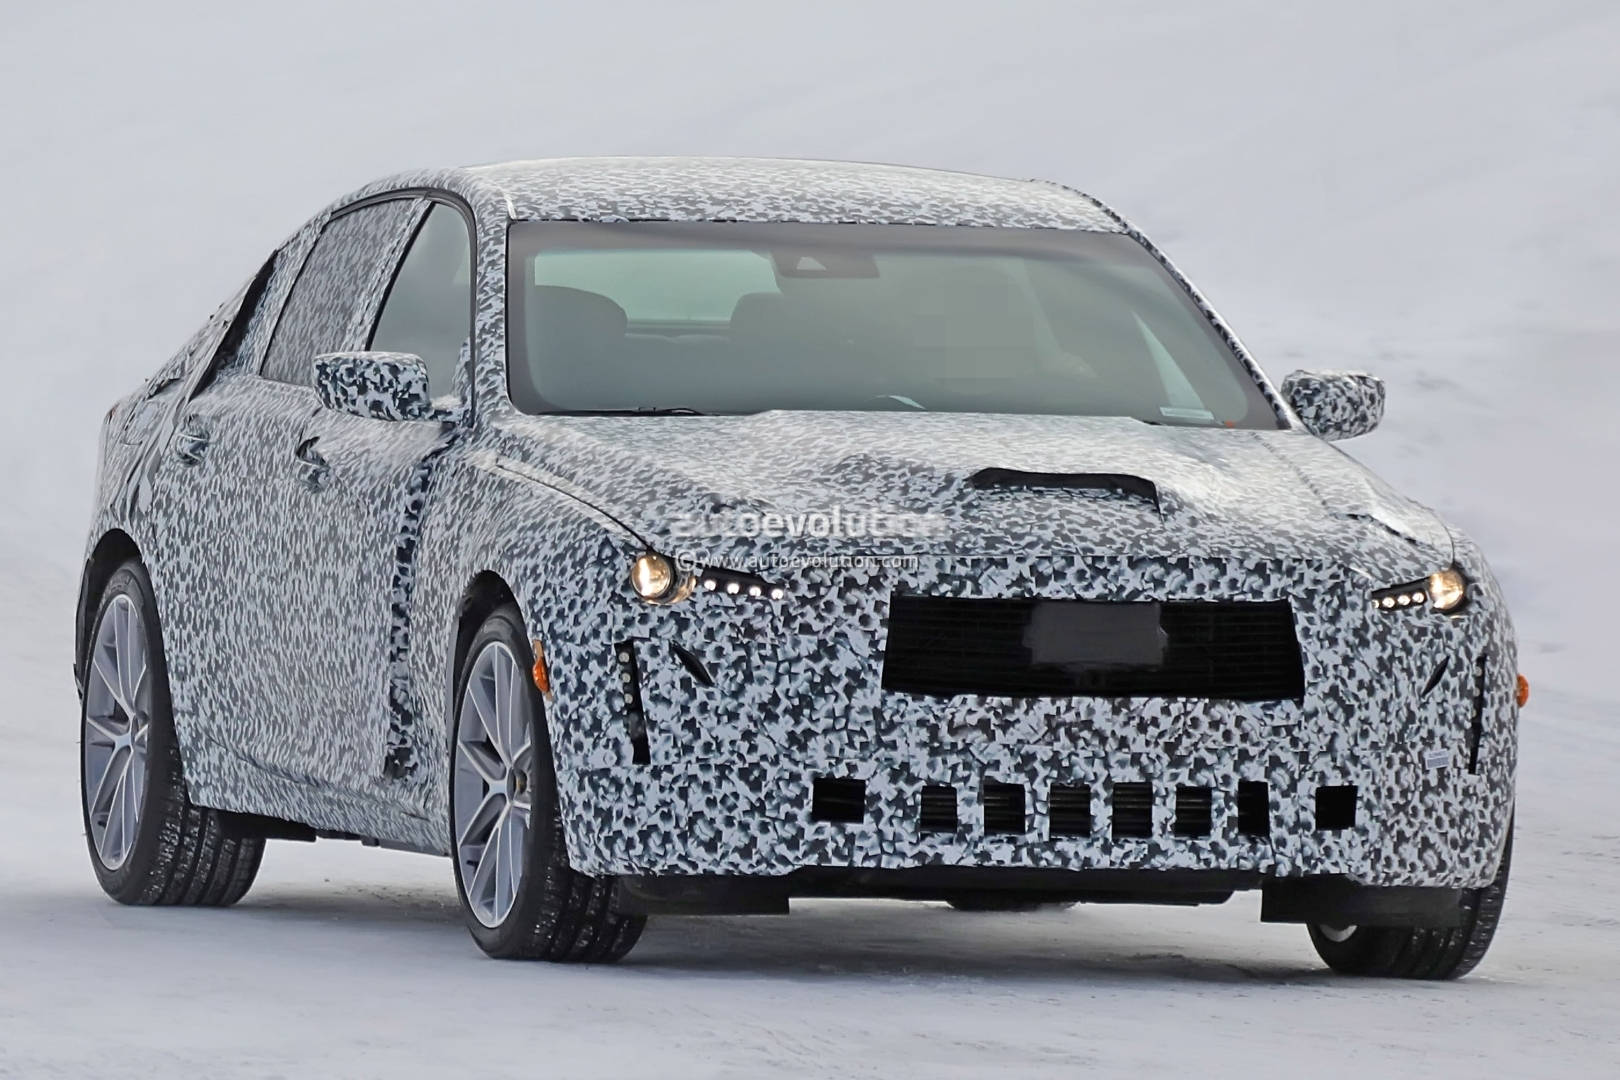 spyshots  2020 cadillac ct5 gets closer to production  will replace ats and cts